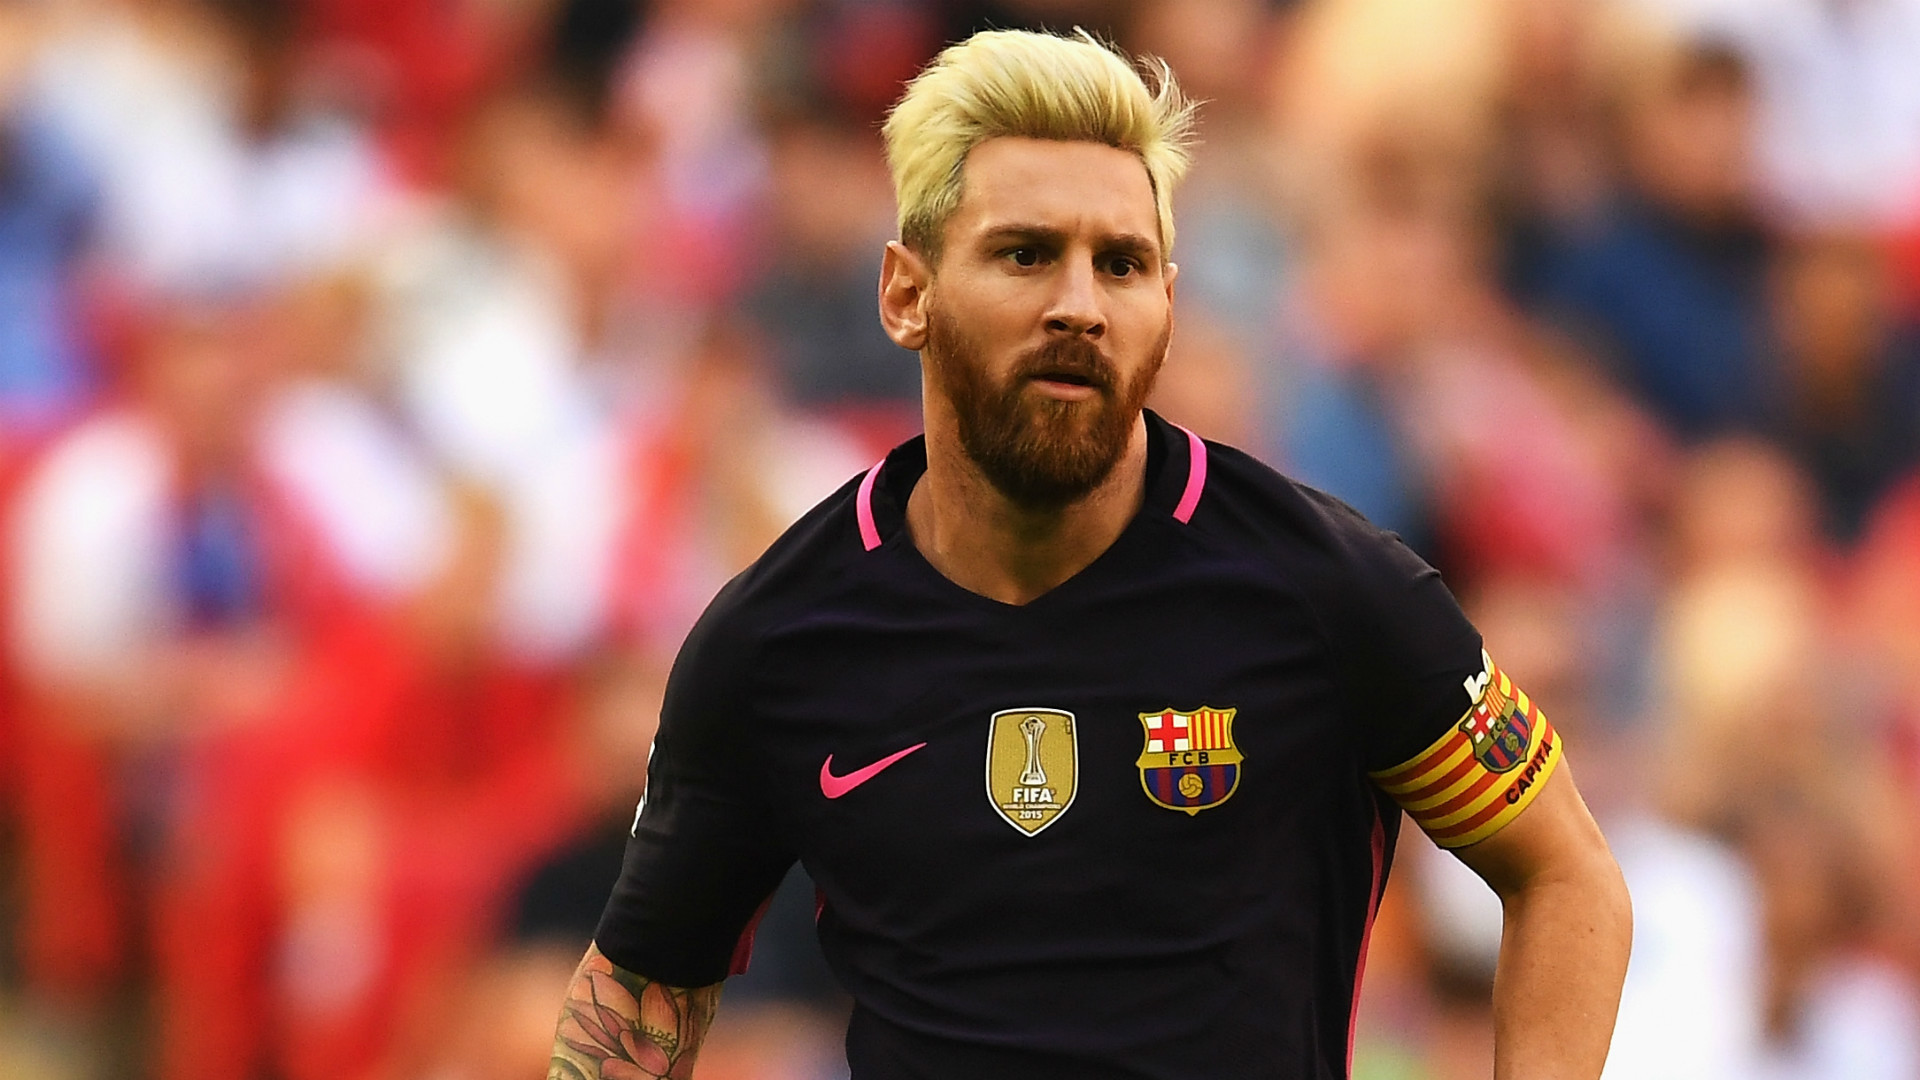 Messi Wallpaper: Lionel Messi HD Wallpapers 2018 (80+ Images